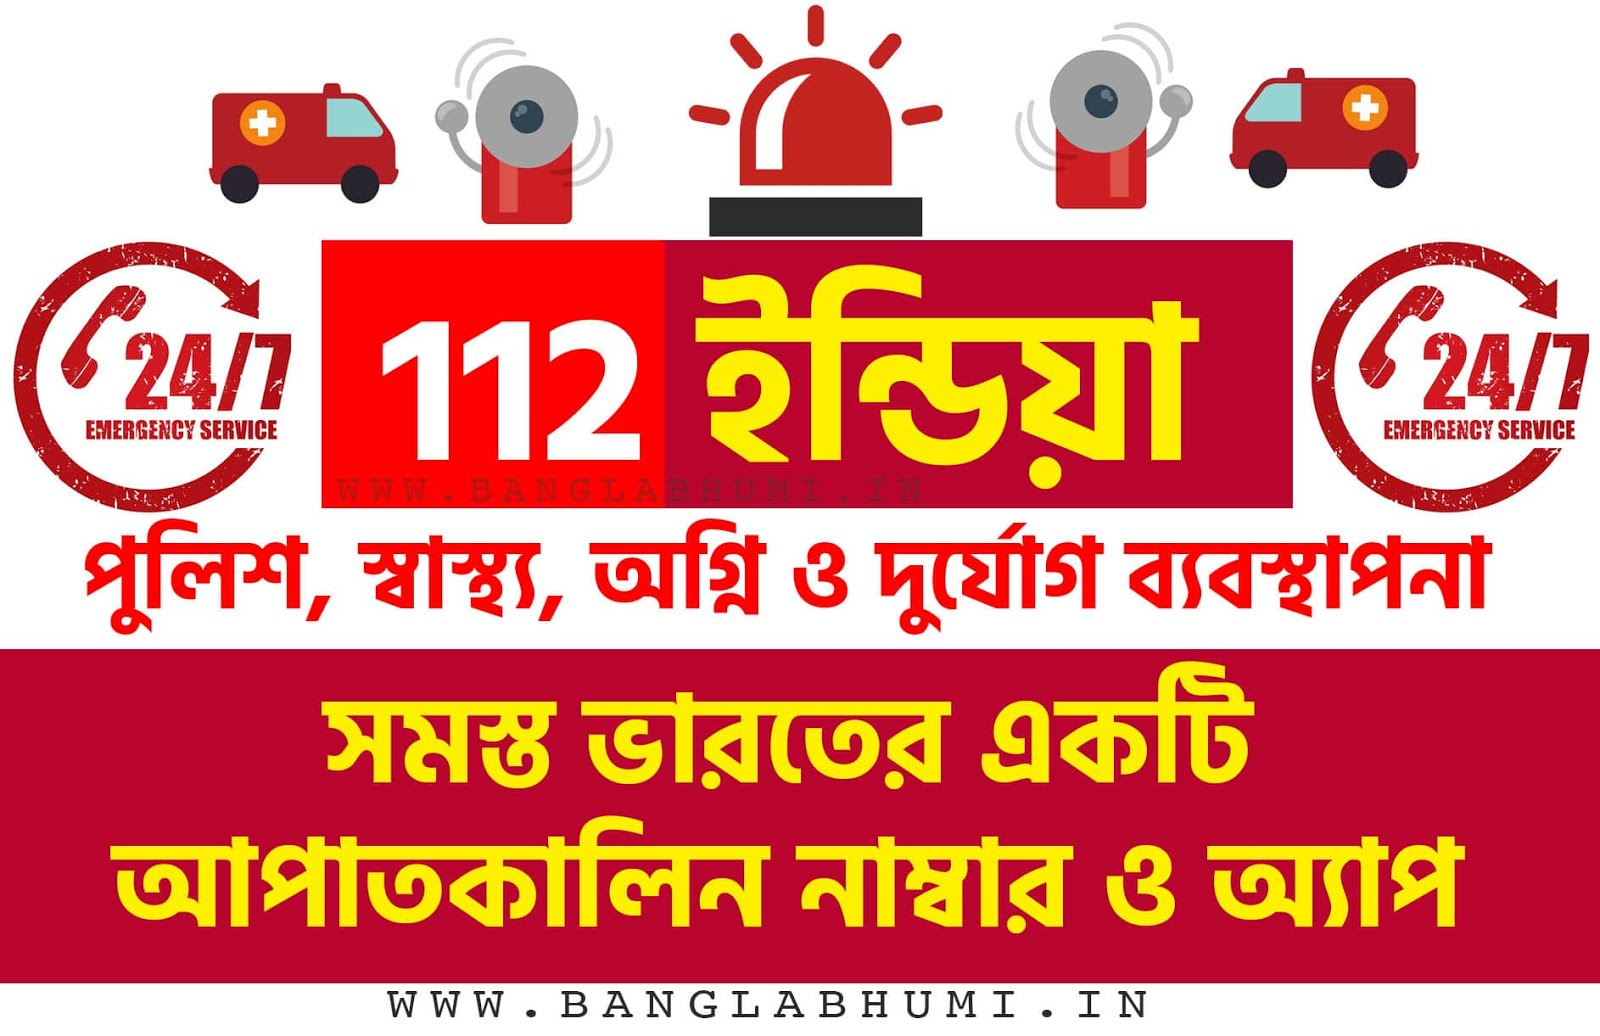 112 India - Emergency Number for All India and West bengal